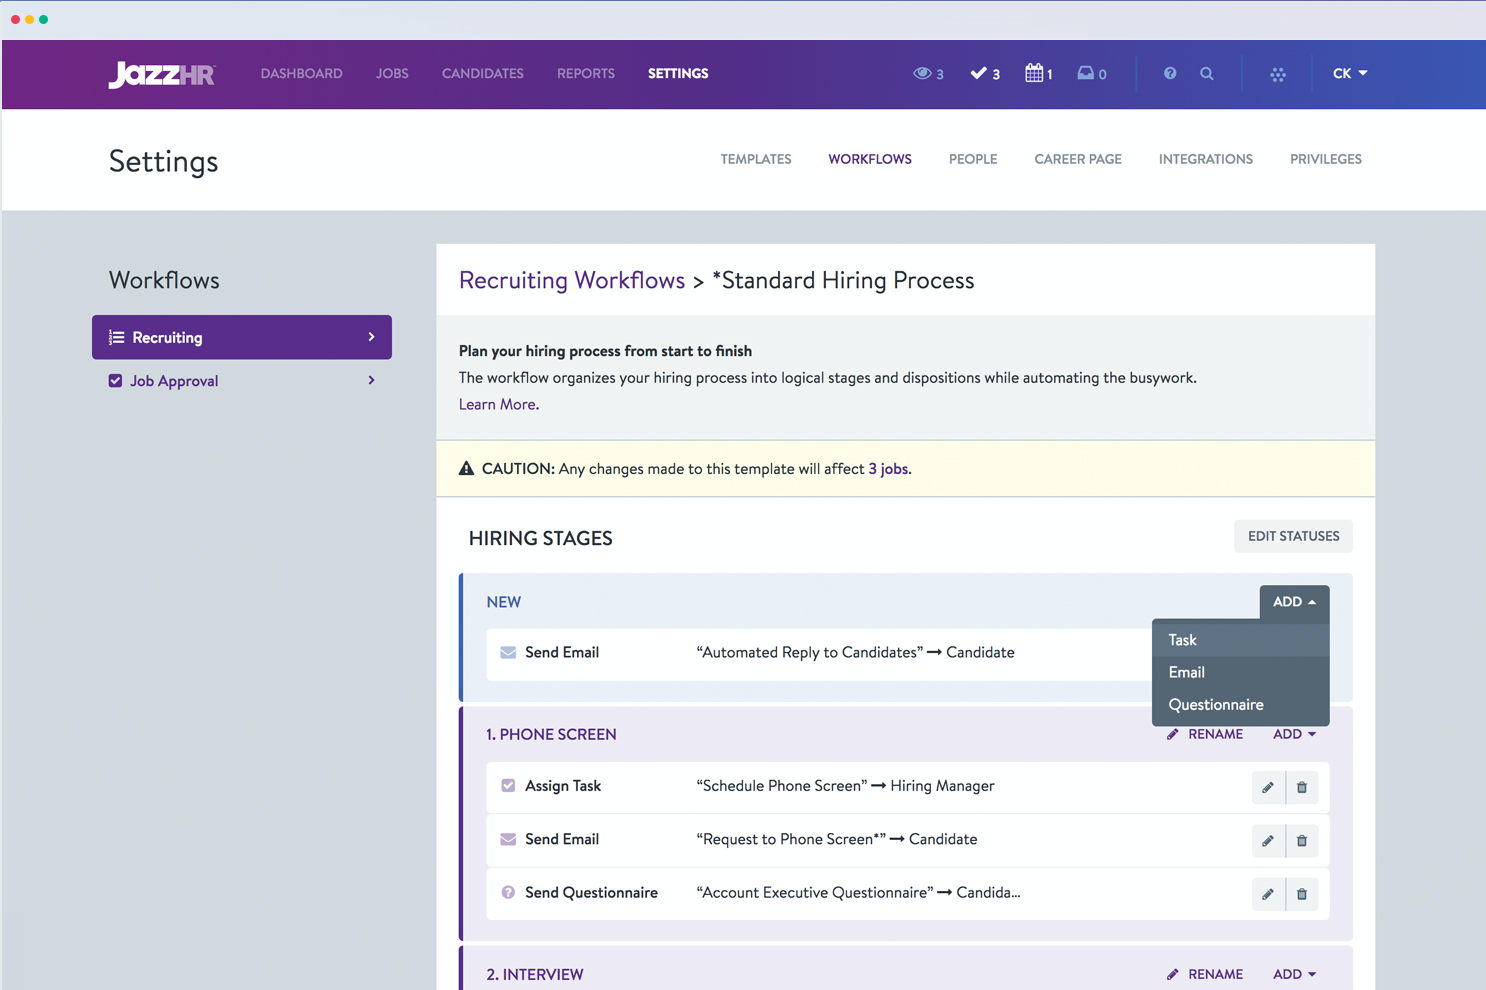 Recruiters can customize their workflows to provide their optimal candidate experience in JazzHR